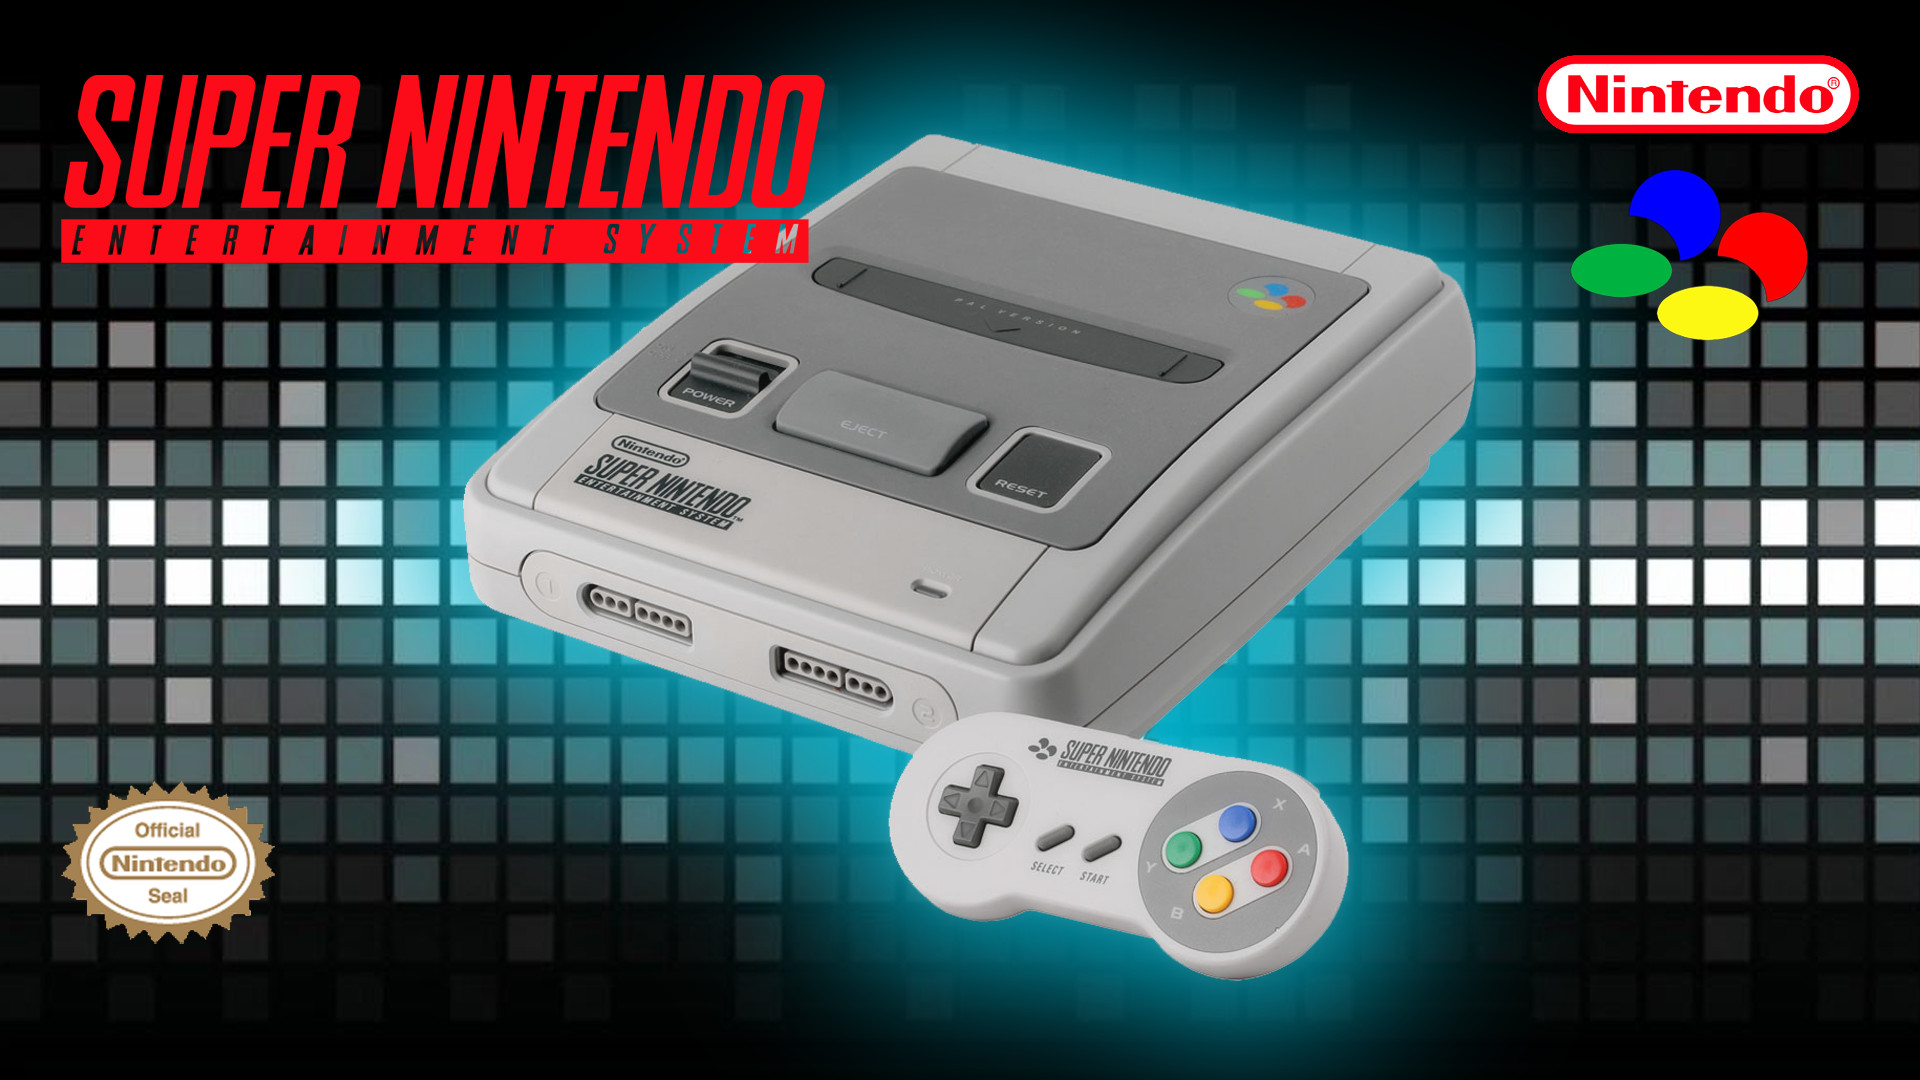 The Super Nintendo console.